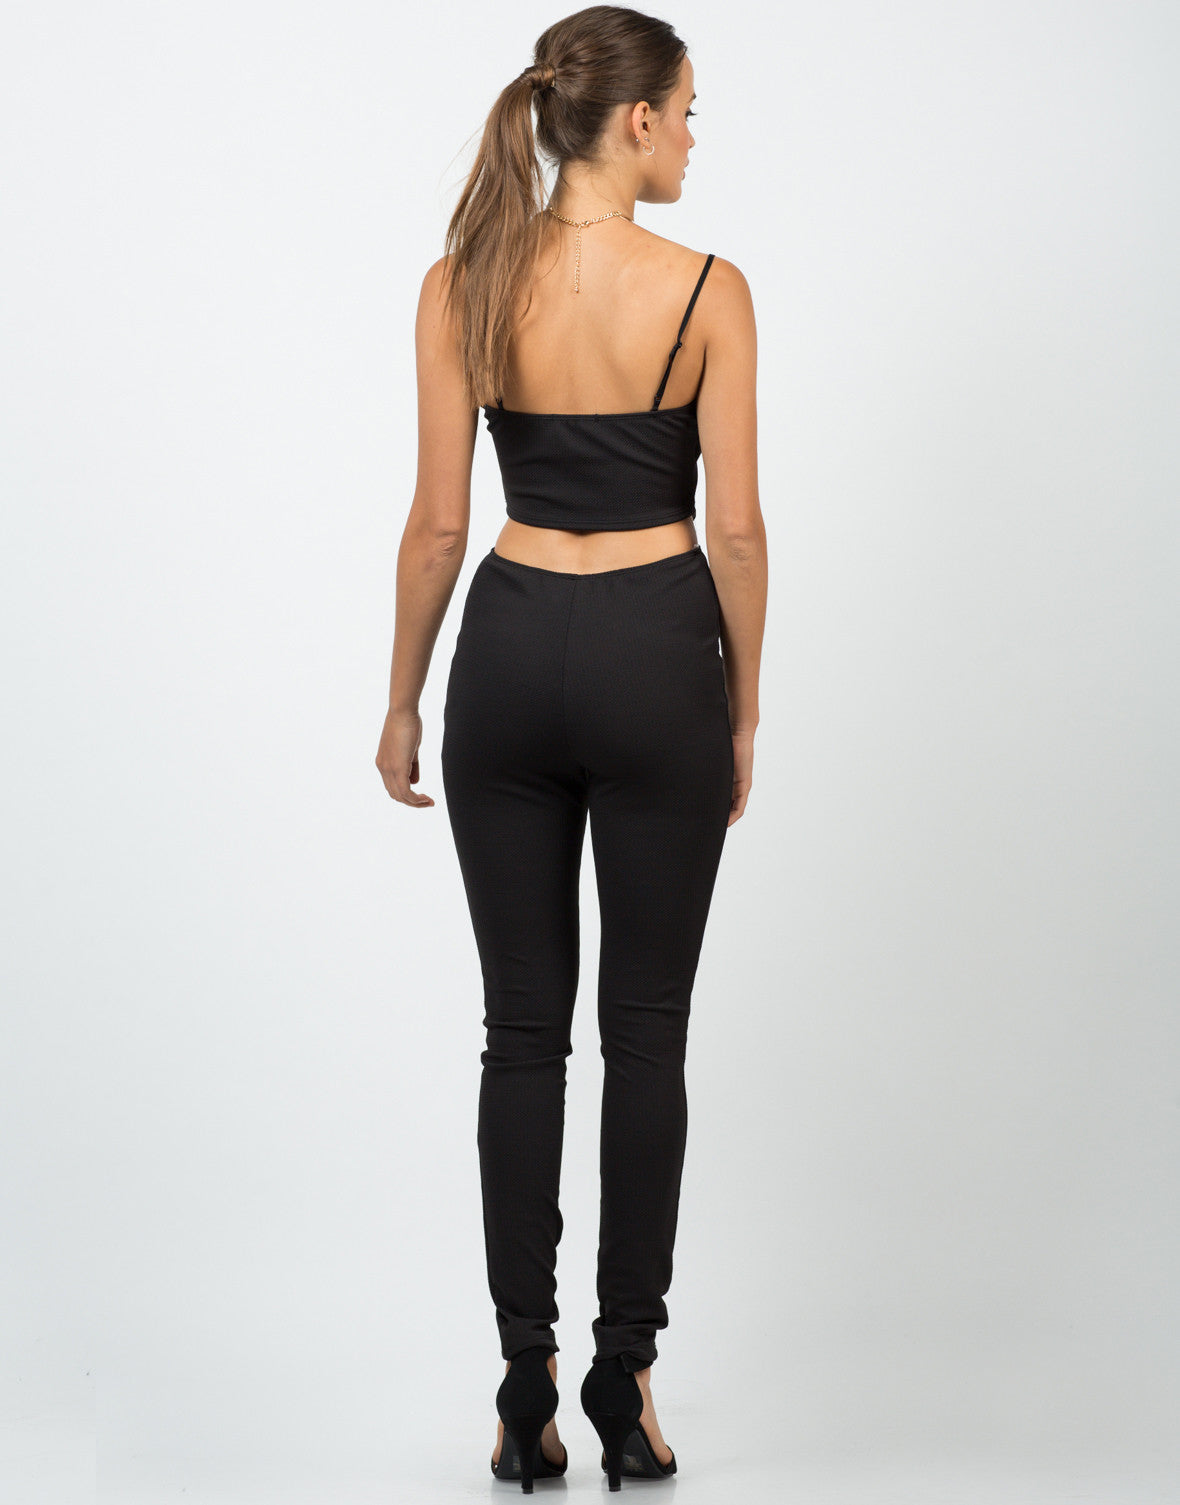 Back View of Textured Cut Out Jumpsuit